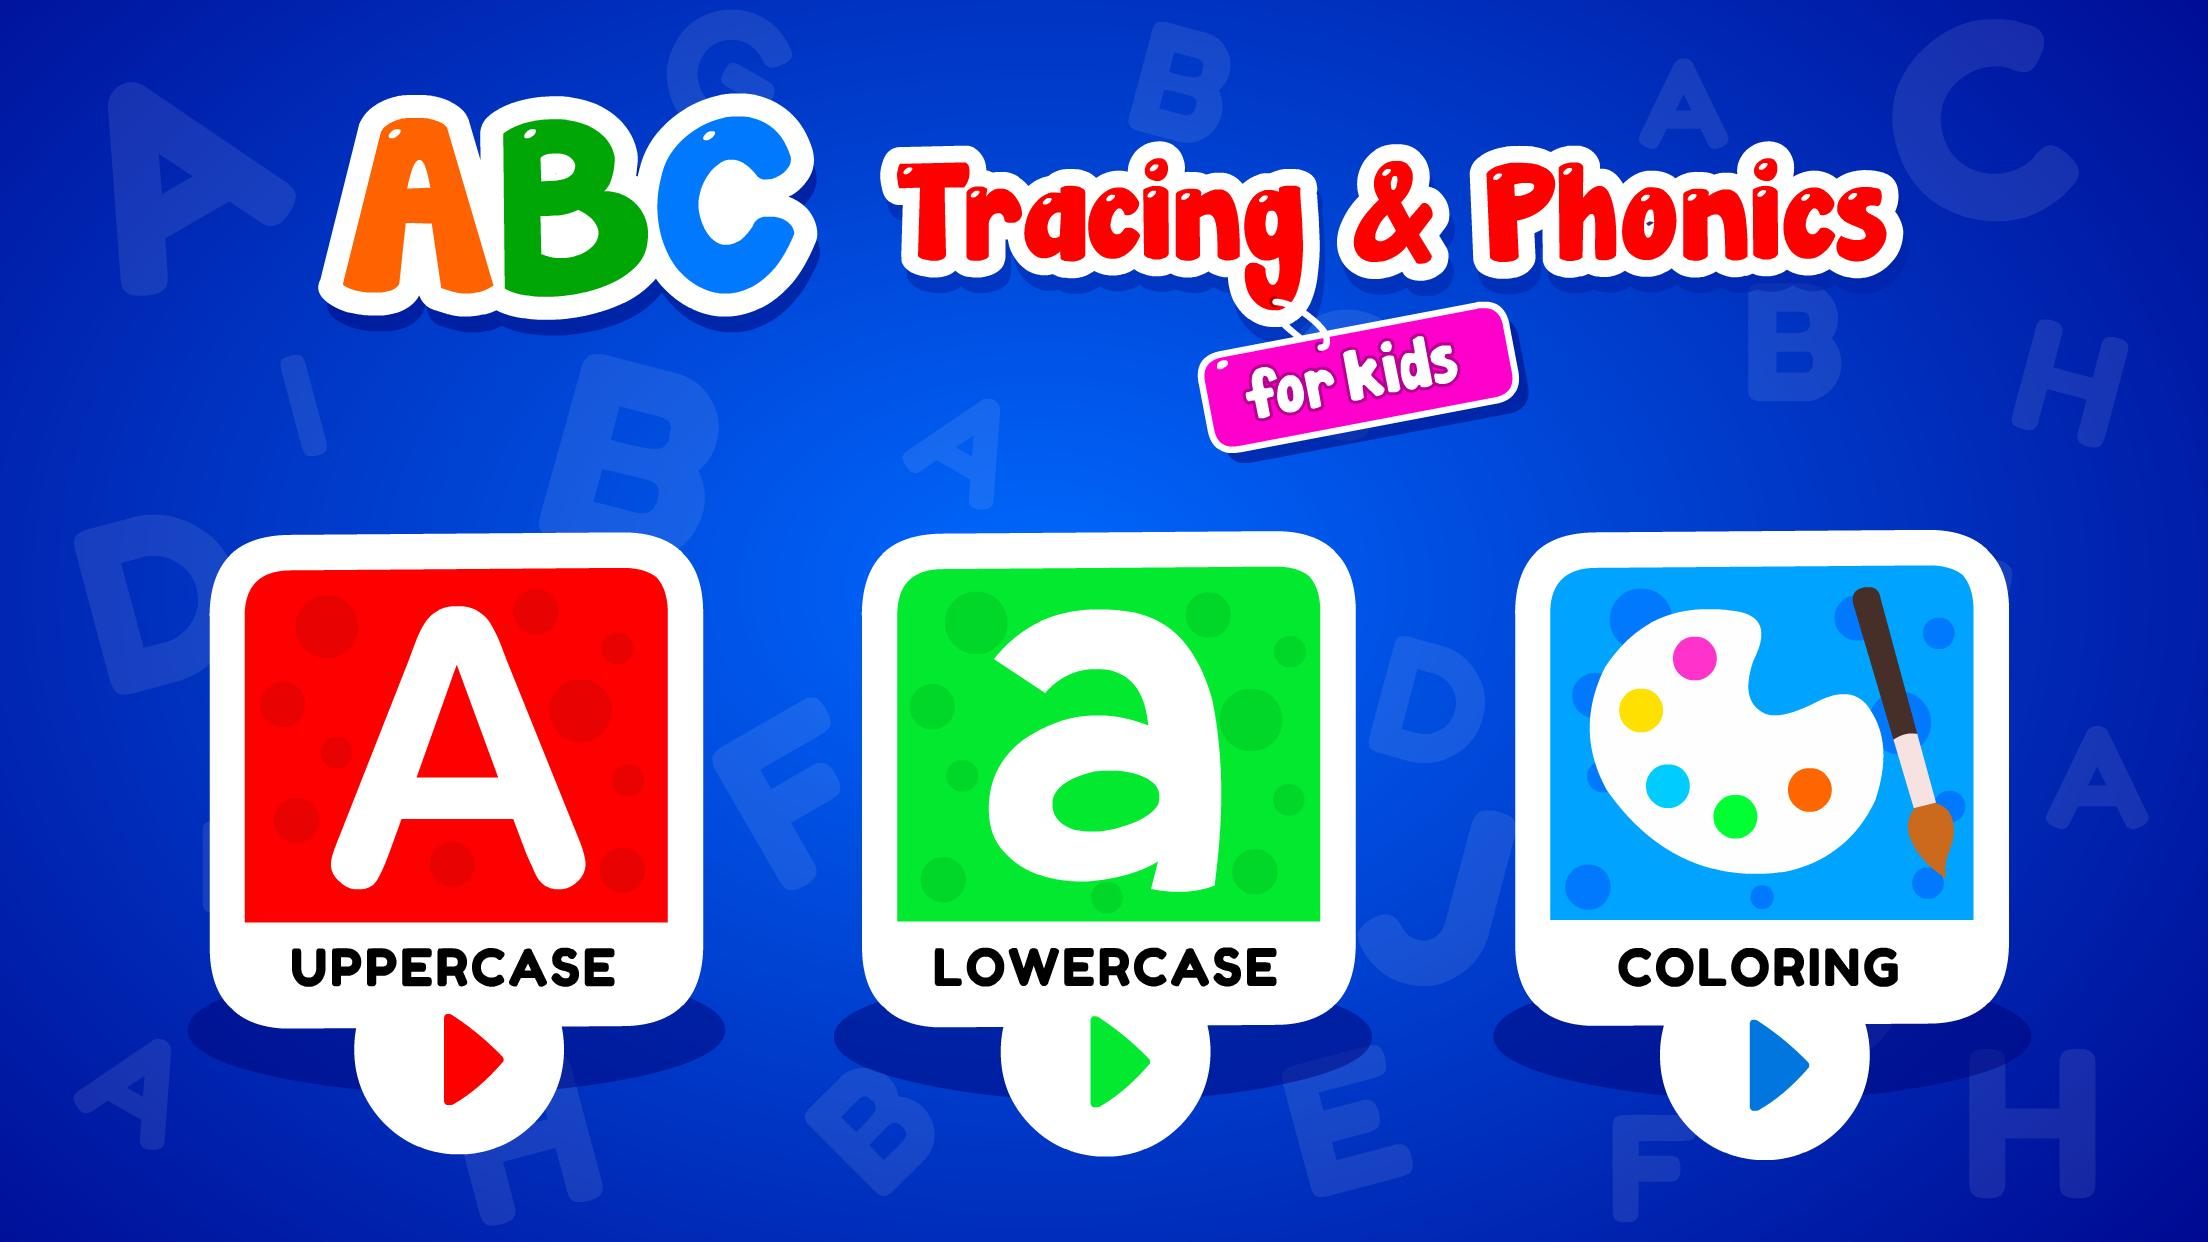 Abc Tracing For Android - Apk Download regarding Abc Tracing Mod Apk